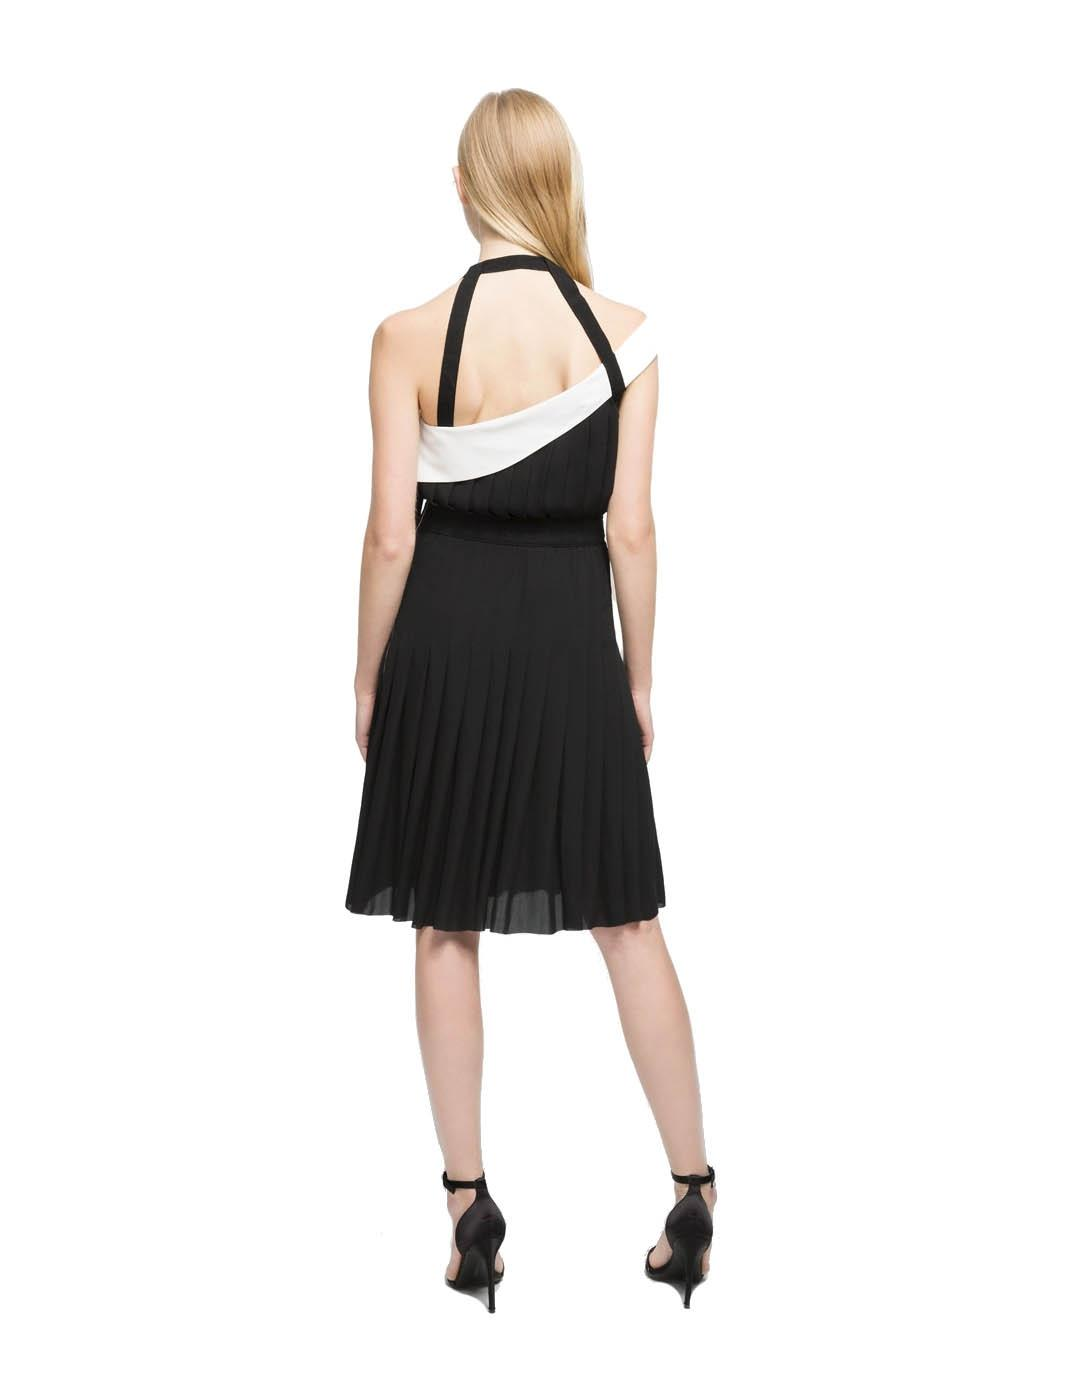 Vestido Karl Lagerfeld negro Pleated w/strap and belt